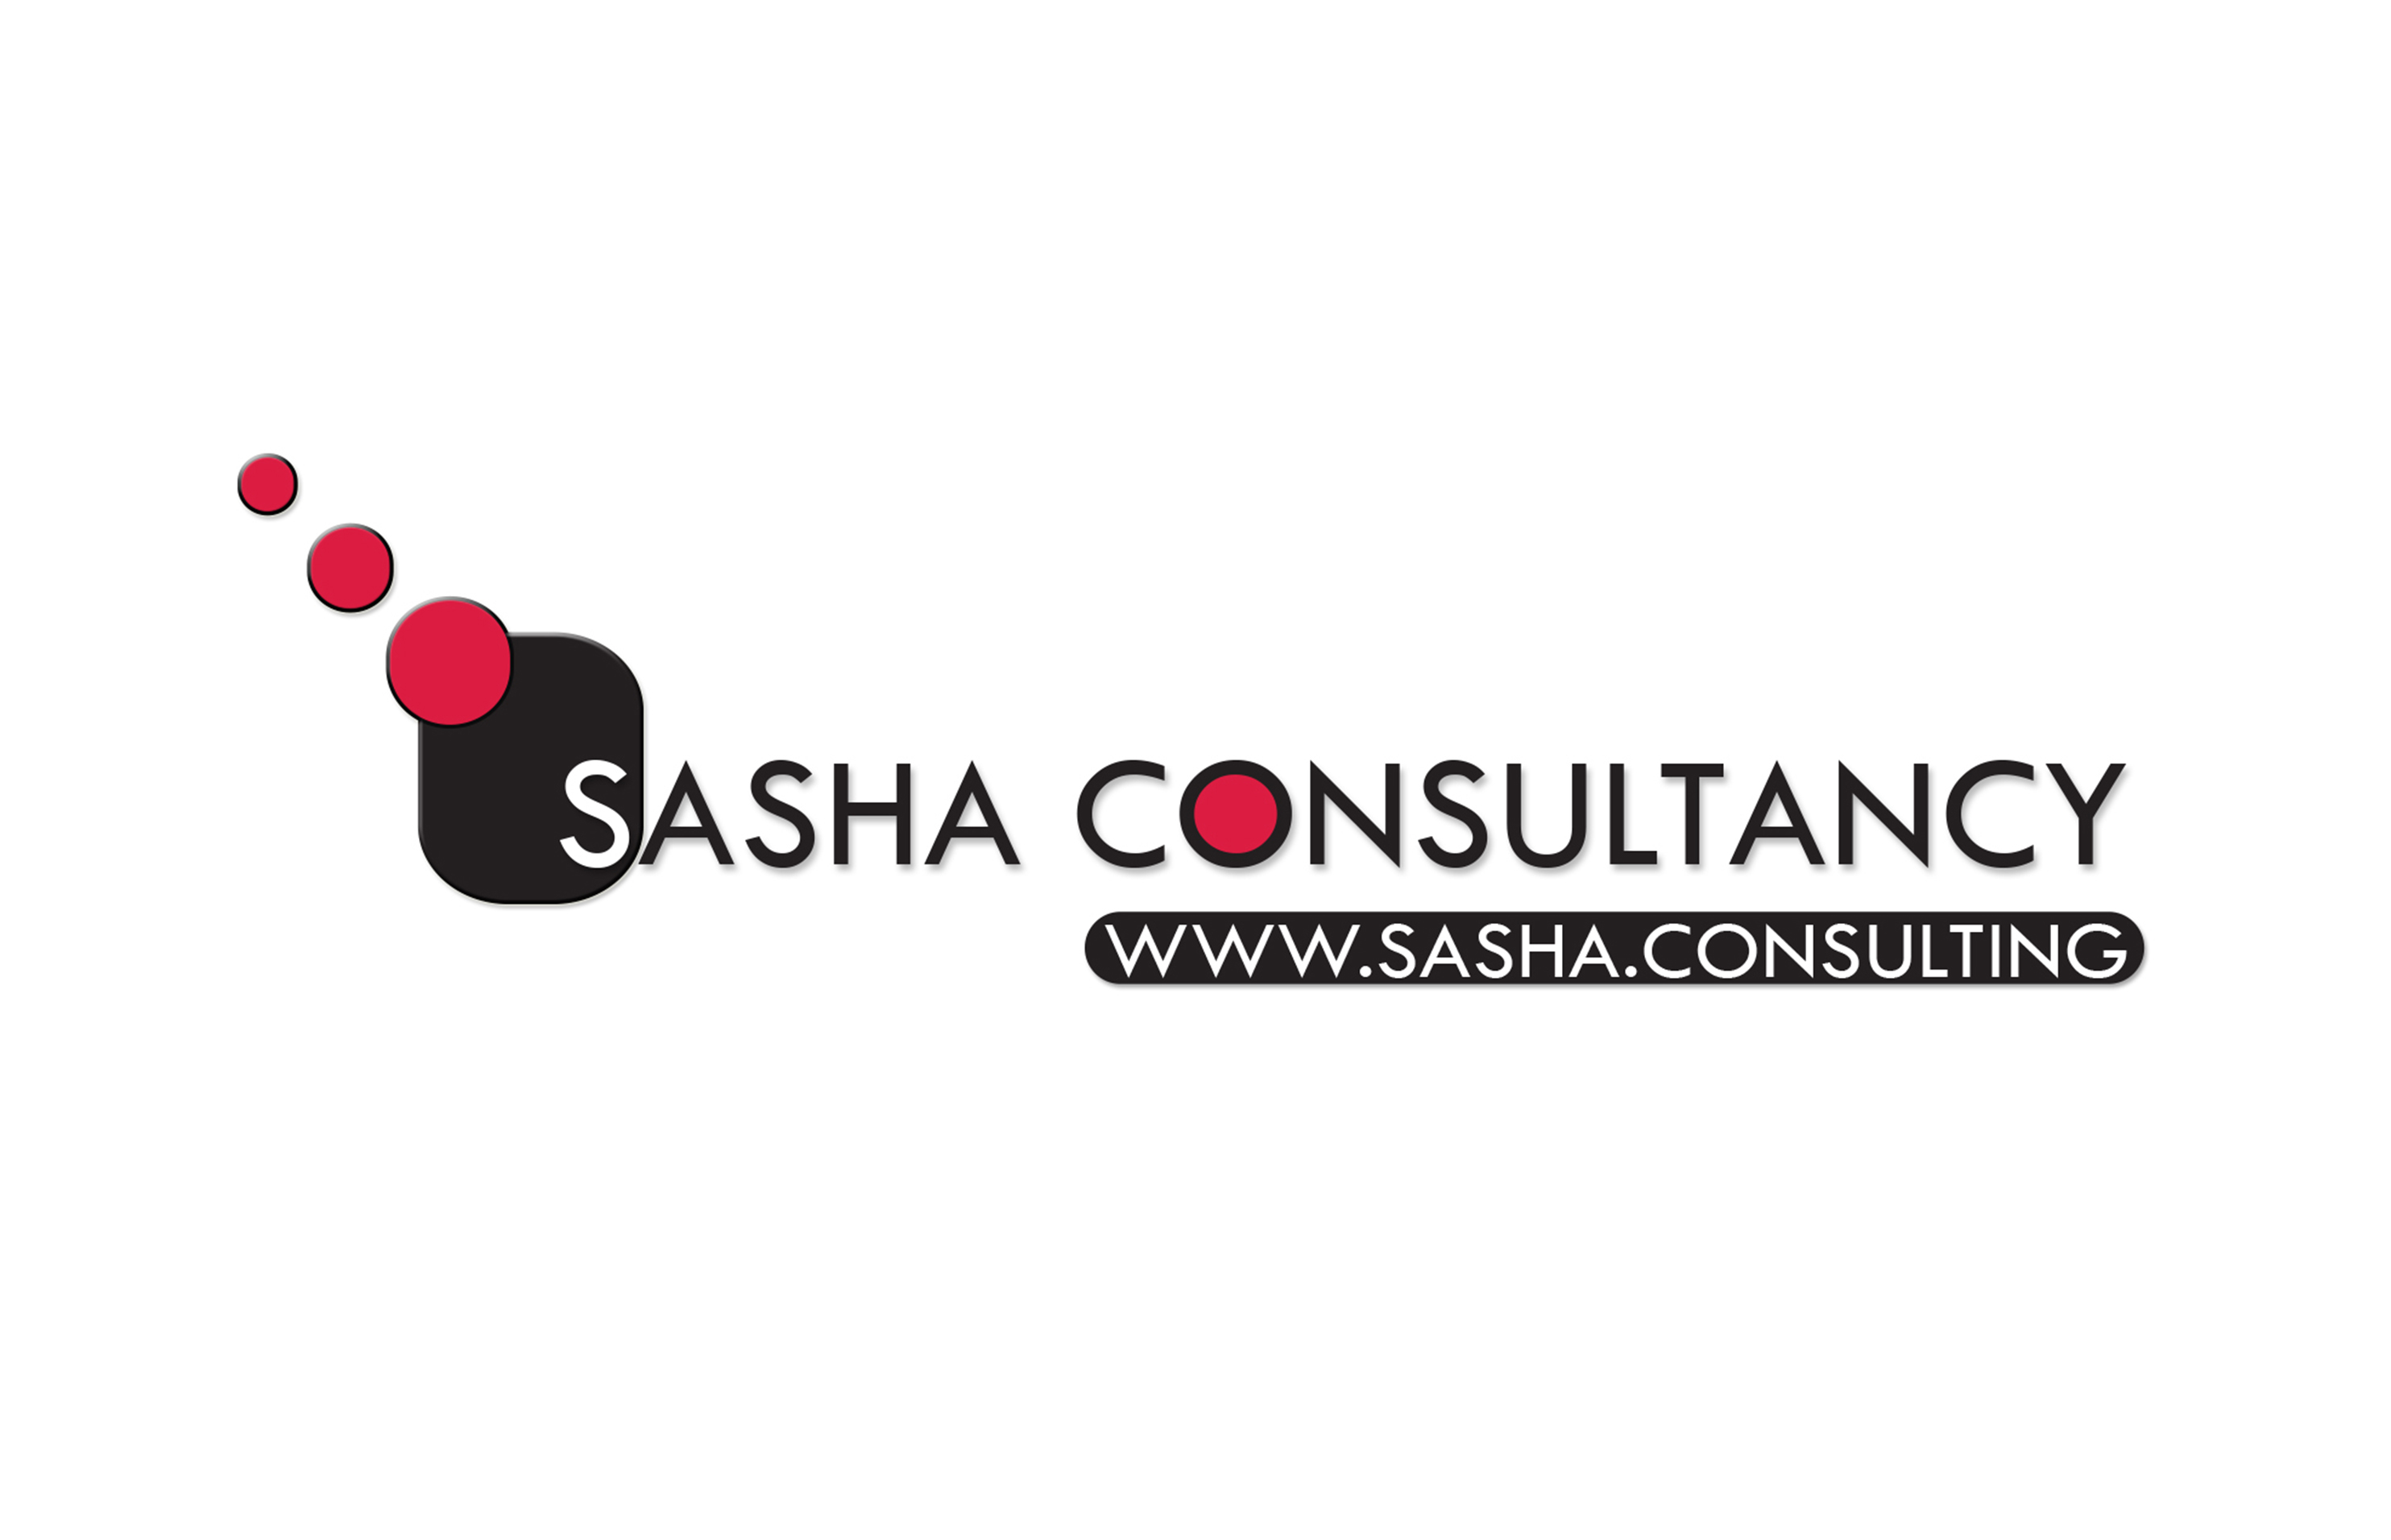 Logo for Sasha Consultancy